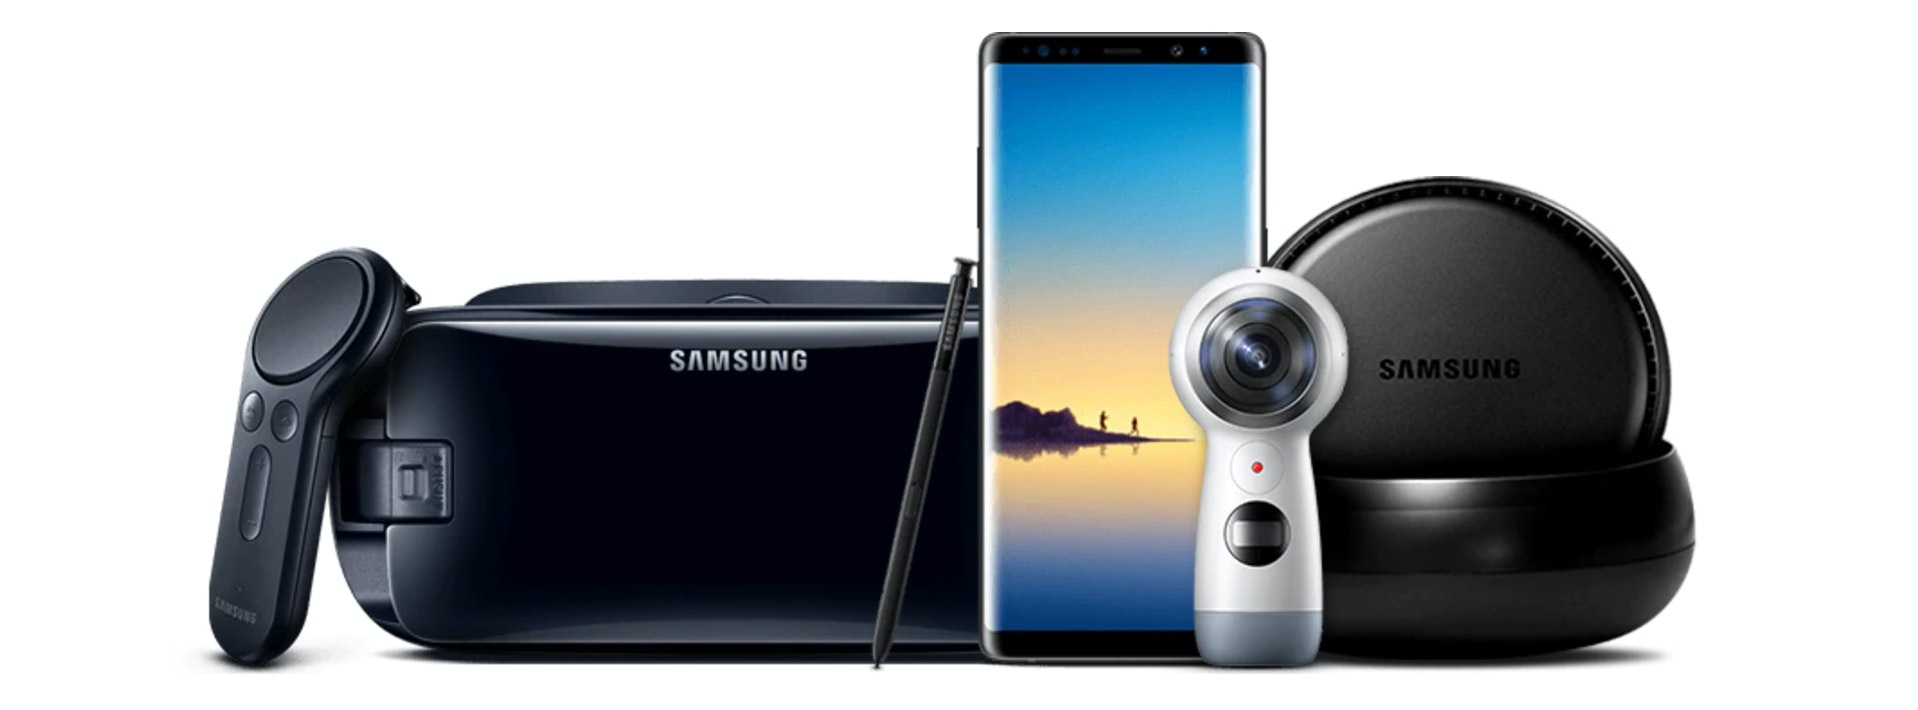 Samsung Products at Harvey Norman